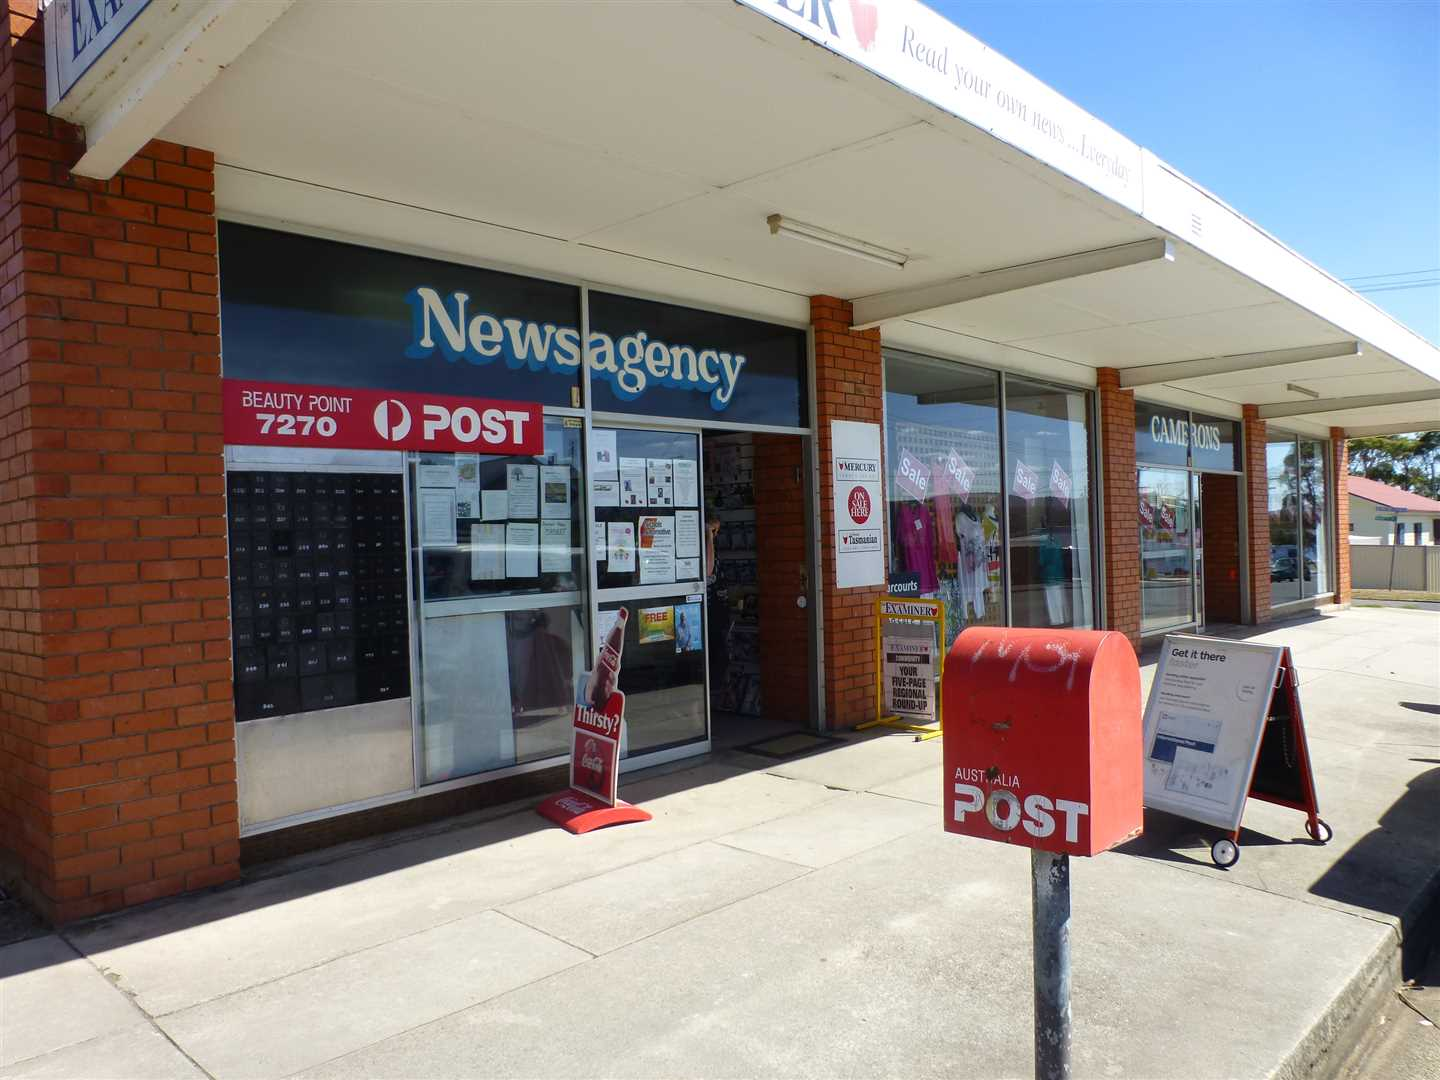 Post Office, Newsagency and Clothing Store!